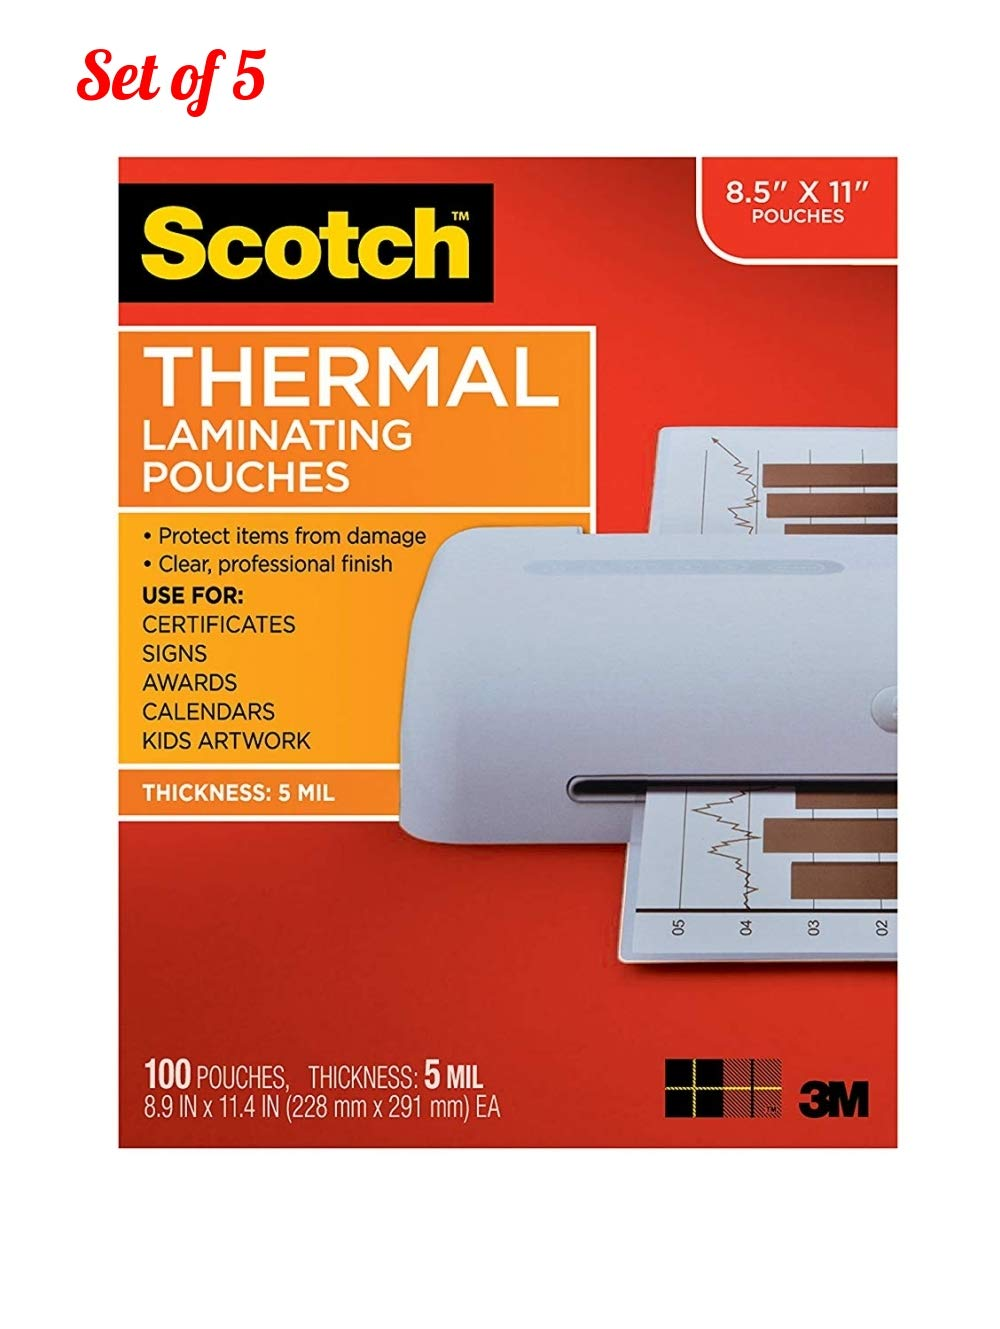 Scotch Thermal Laminating Pouches, 8.9 x 11.4-Inches, 5 mil Thick, 100-Pack (Set of 5) by Scotch Brand